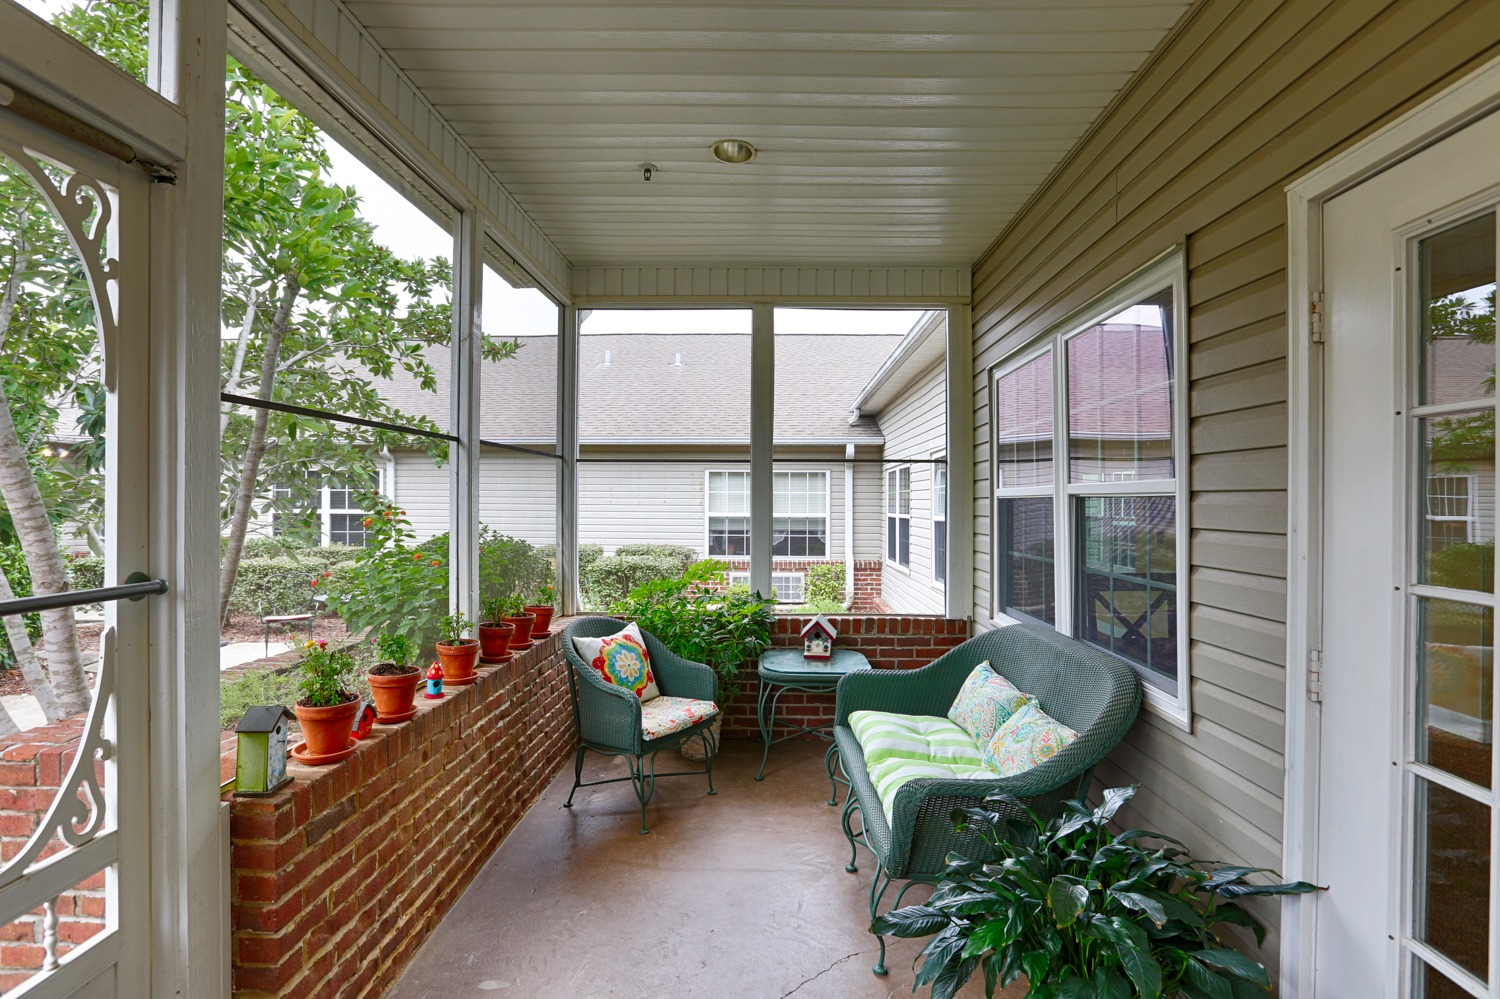 Columbia Cottage Florence - Outdoor area porch with furniture